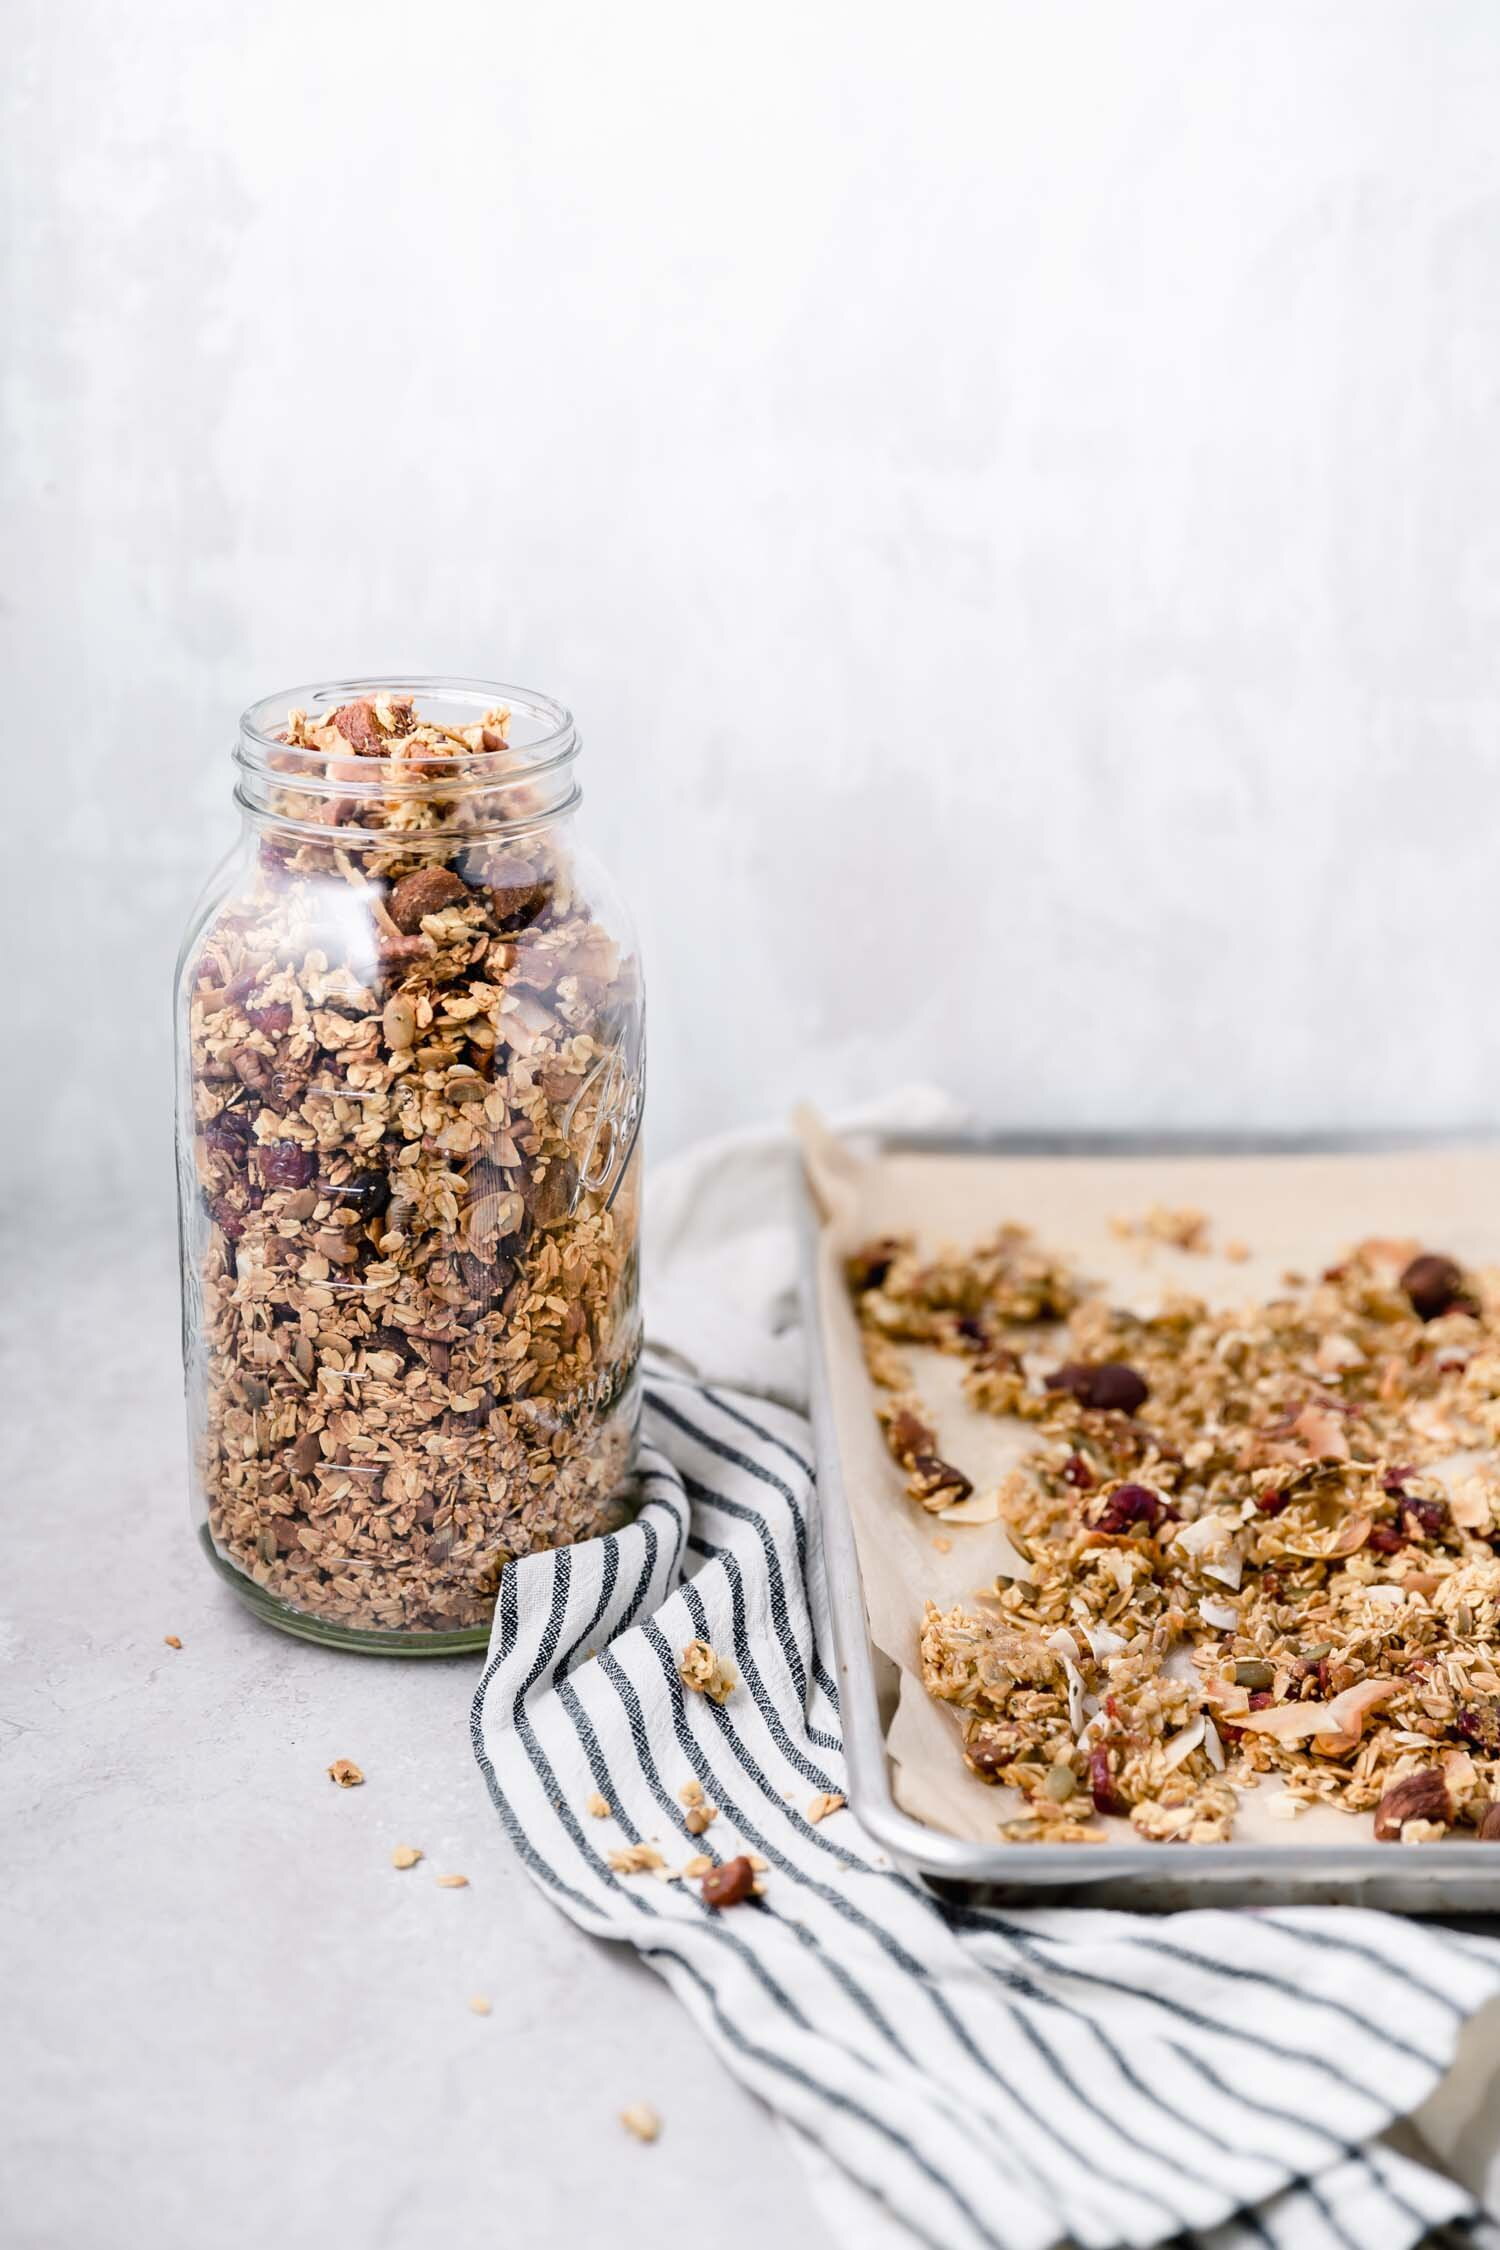 Easy Orange Pecan Power Granola is an easy recipe to make and loaded with goodies. #vegangranola #orangepecan #pecangranola #homemadegranola #recipe #veganrecipe #breakfastrecipe #plantbased